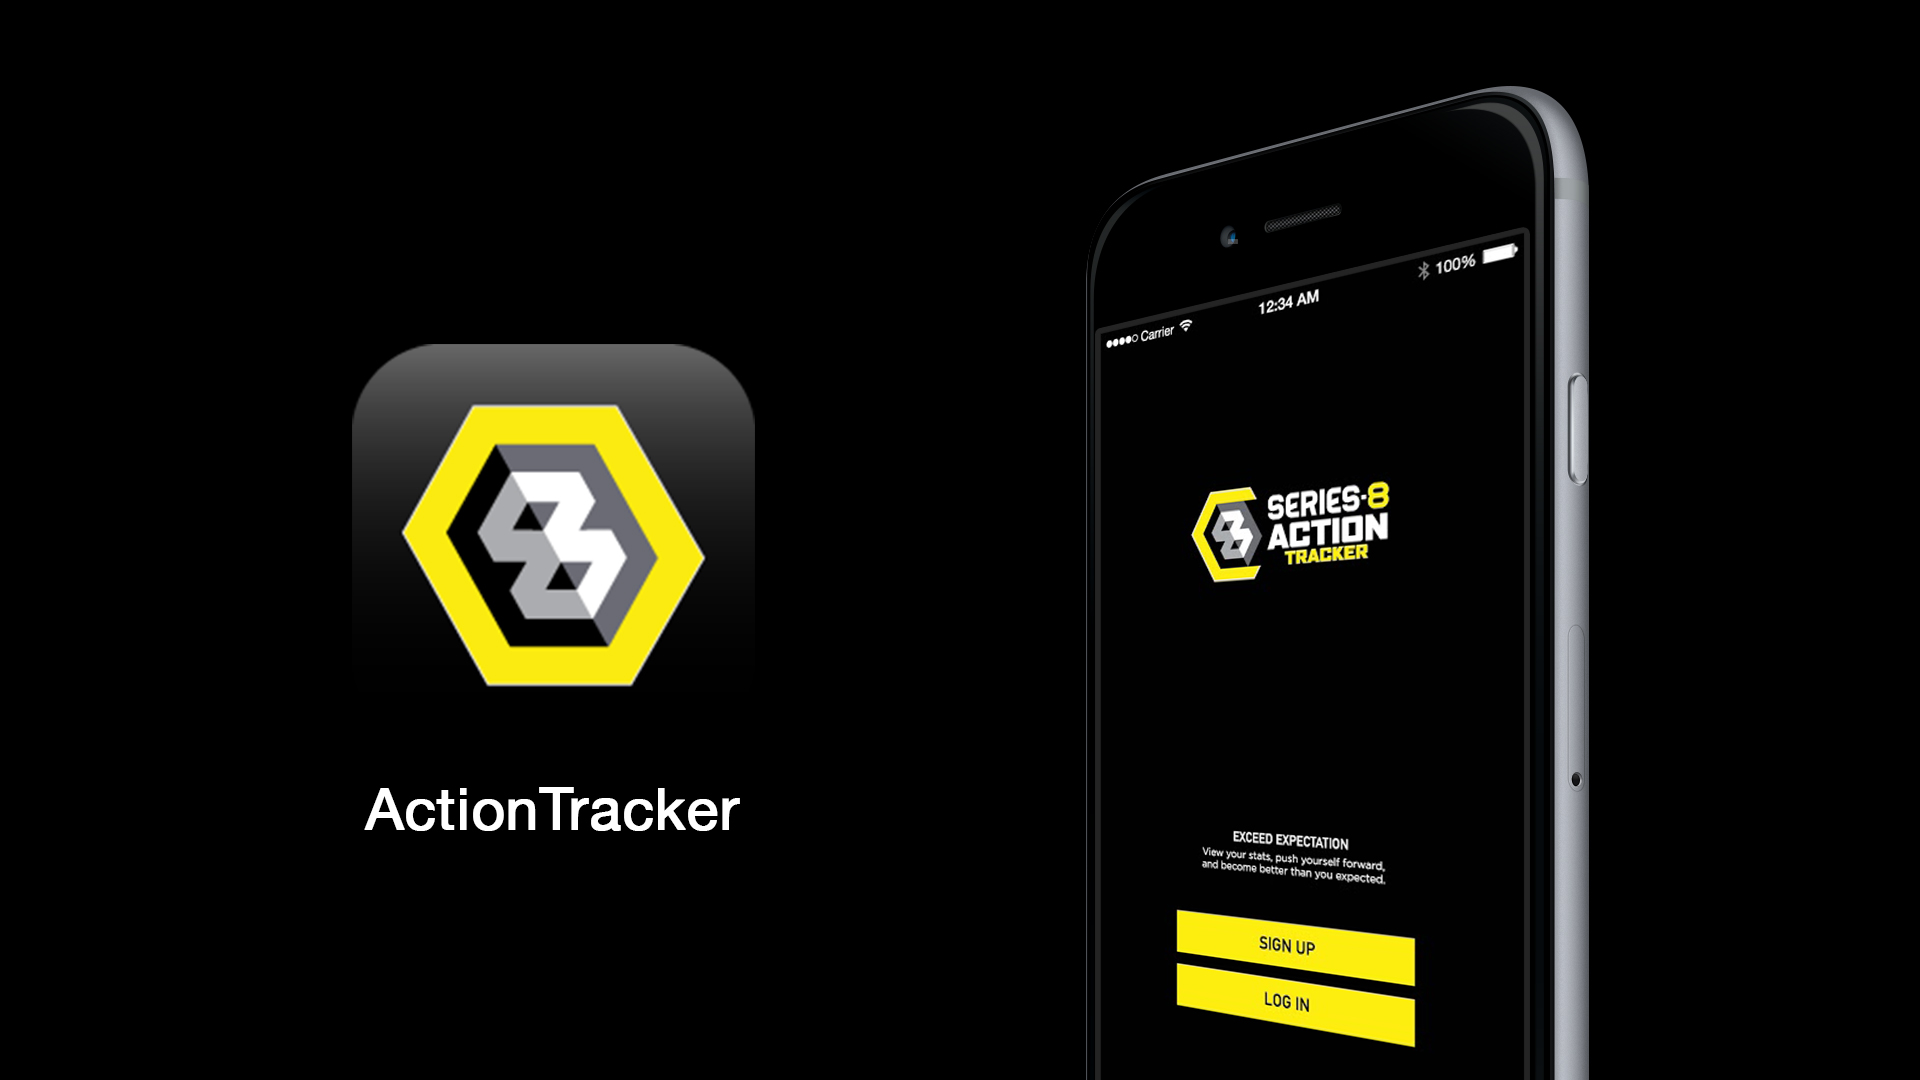 Series 8 Action Tracker